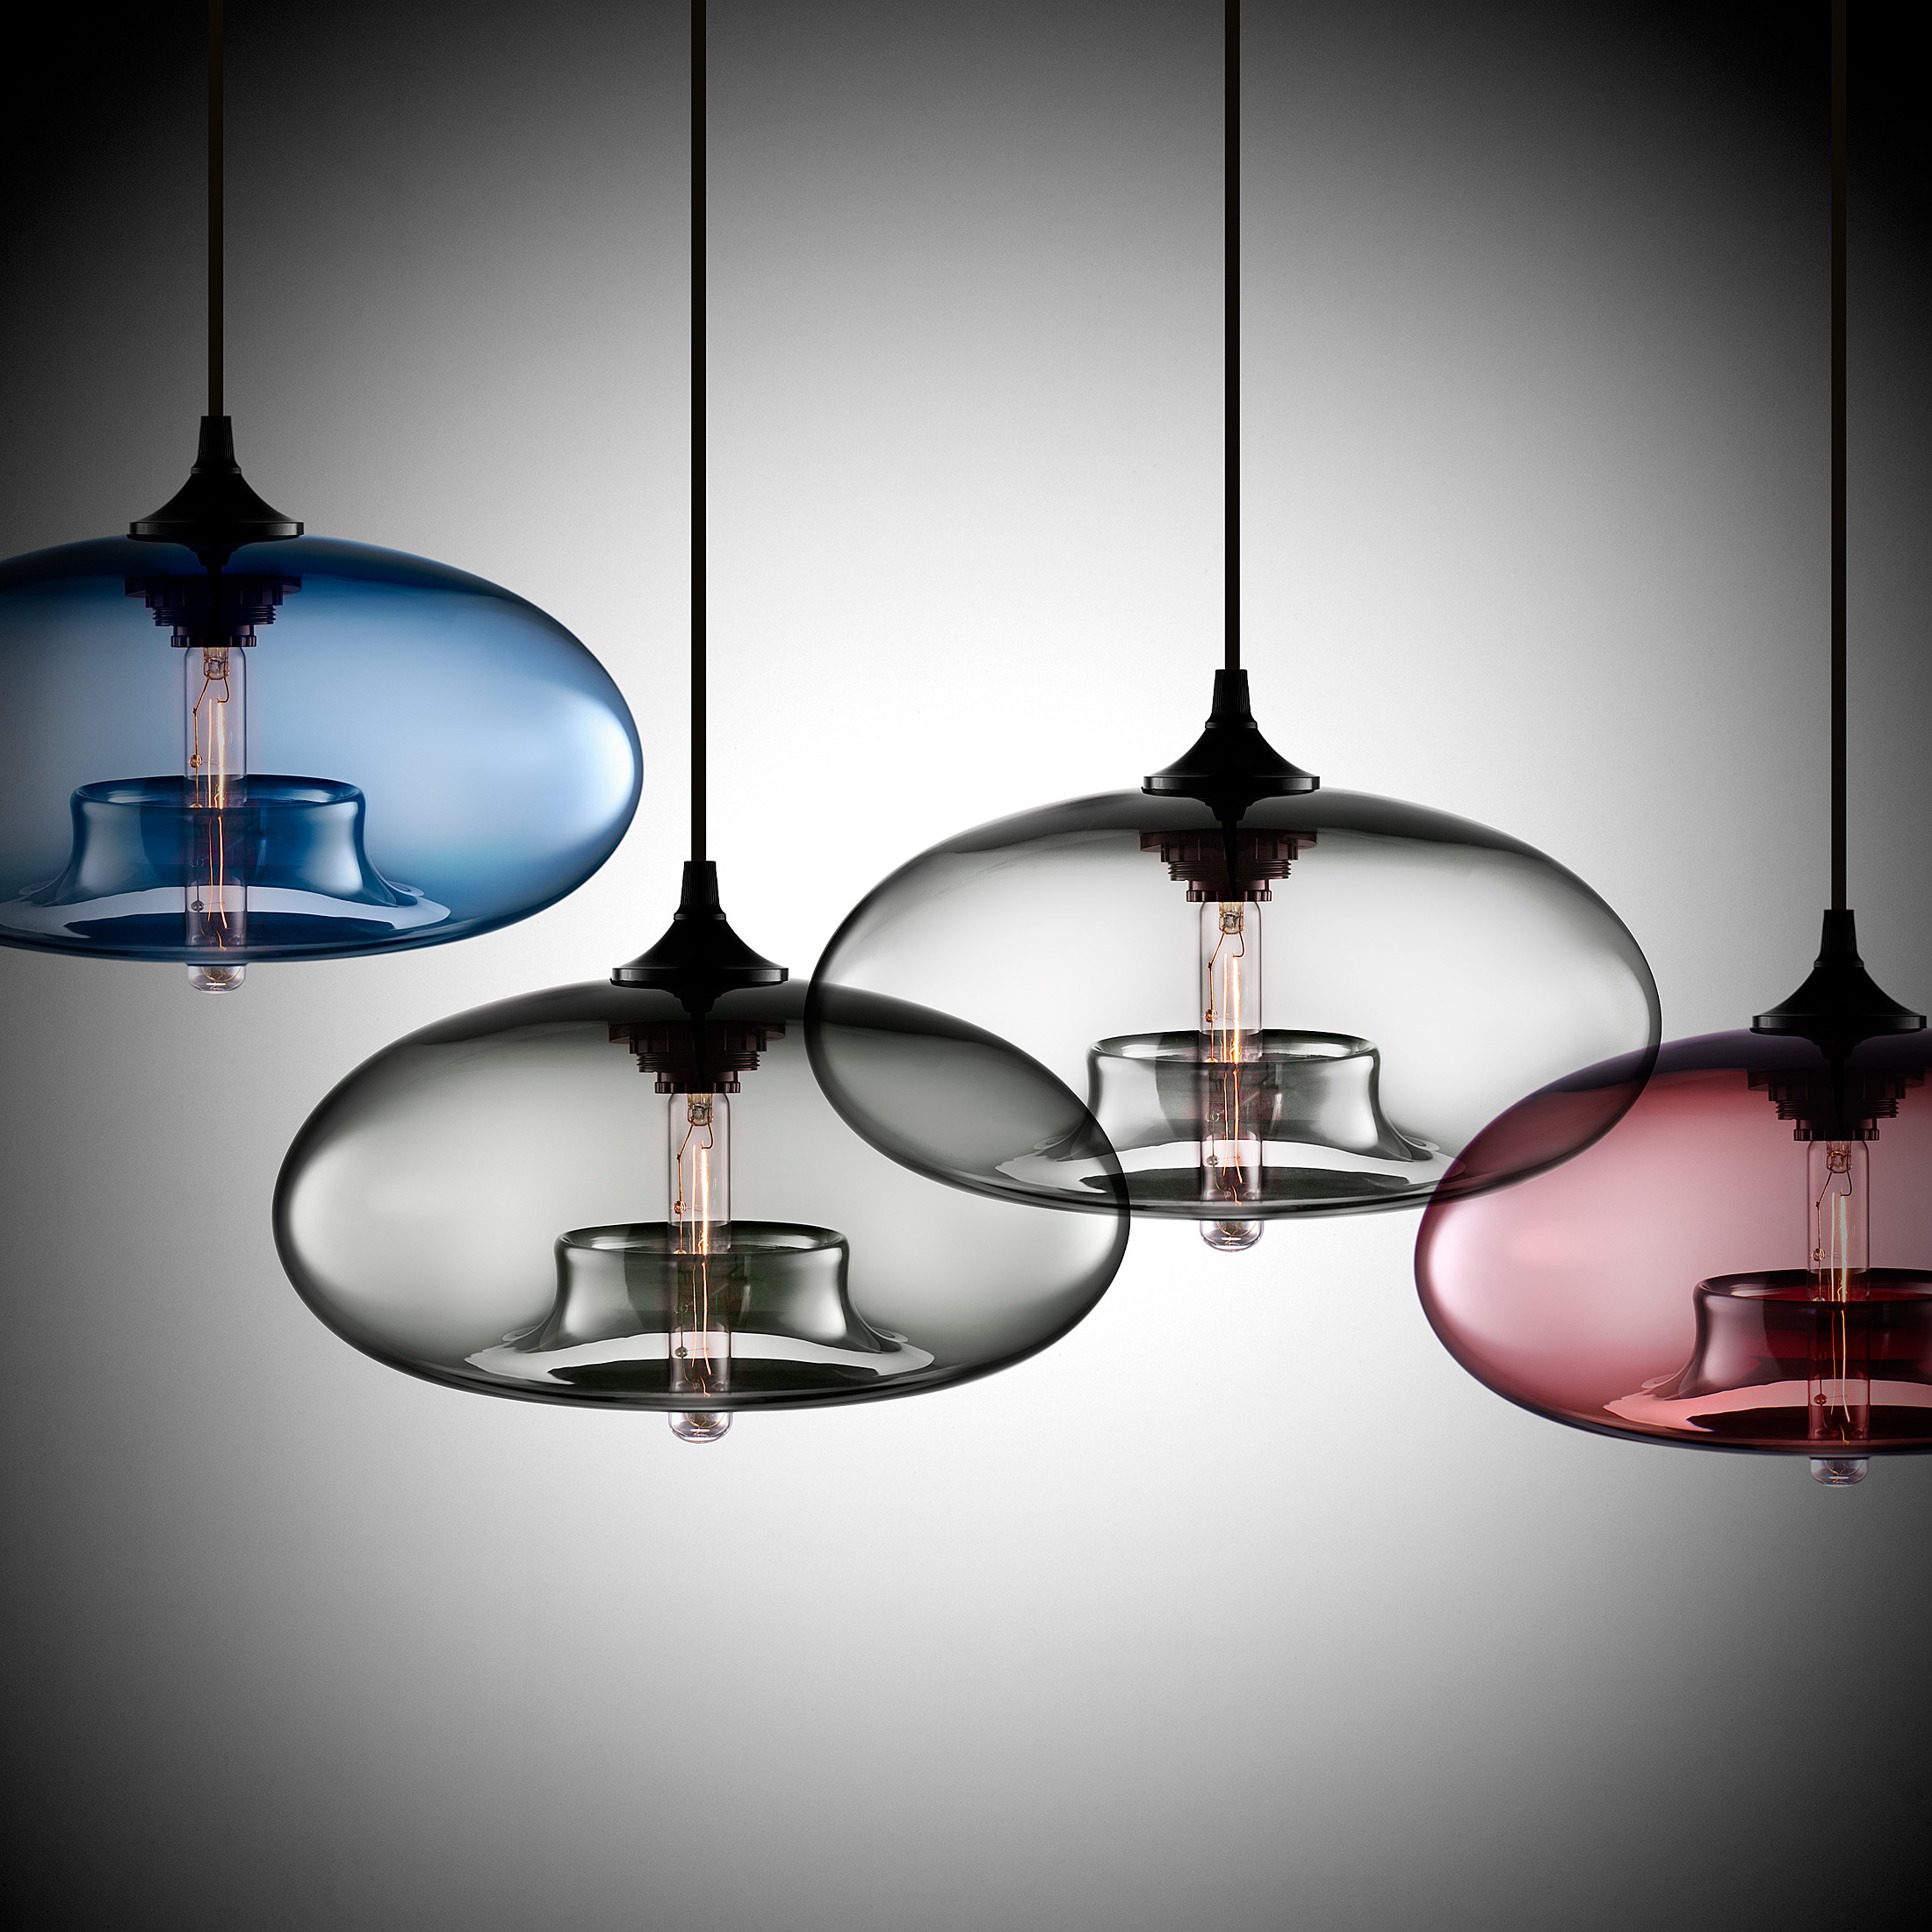 Modern Pendant Light Fixtures For Kitchen Pendant Lamp Design